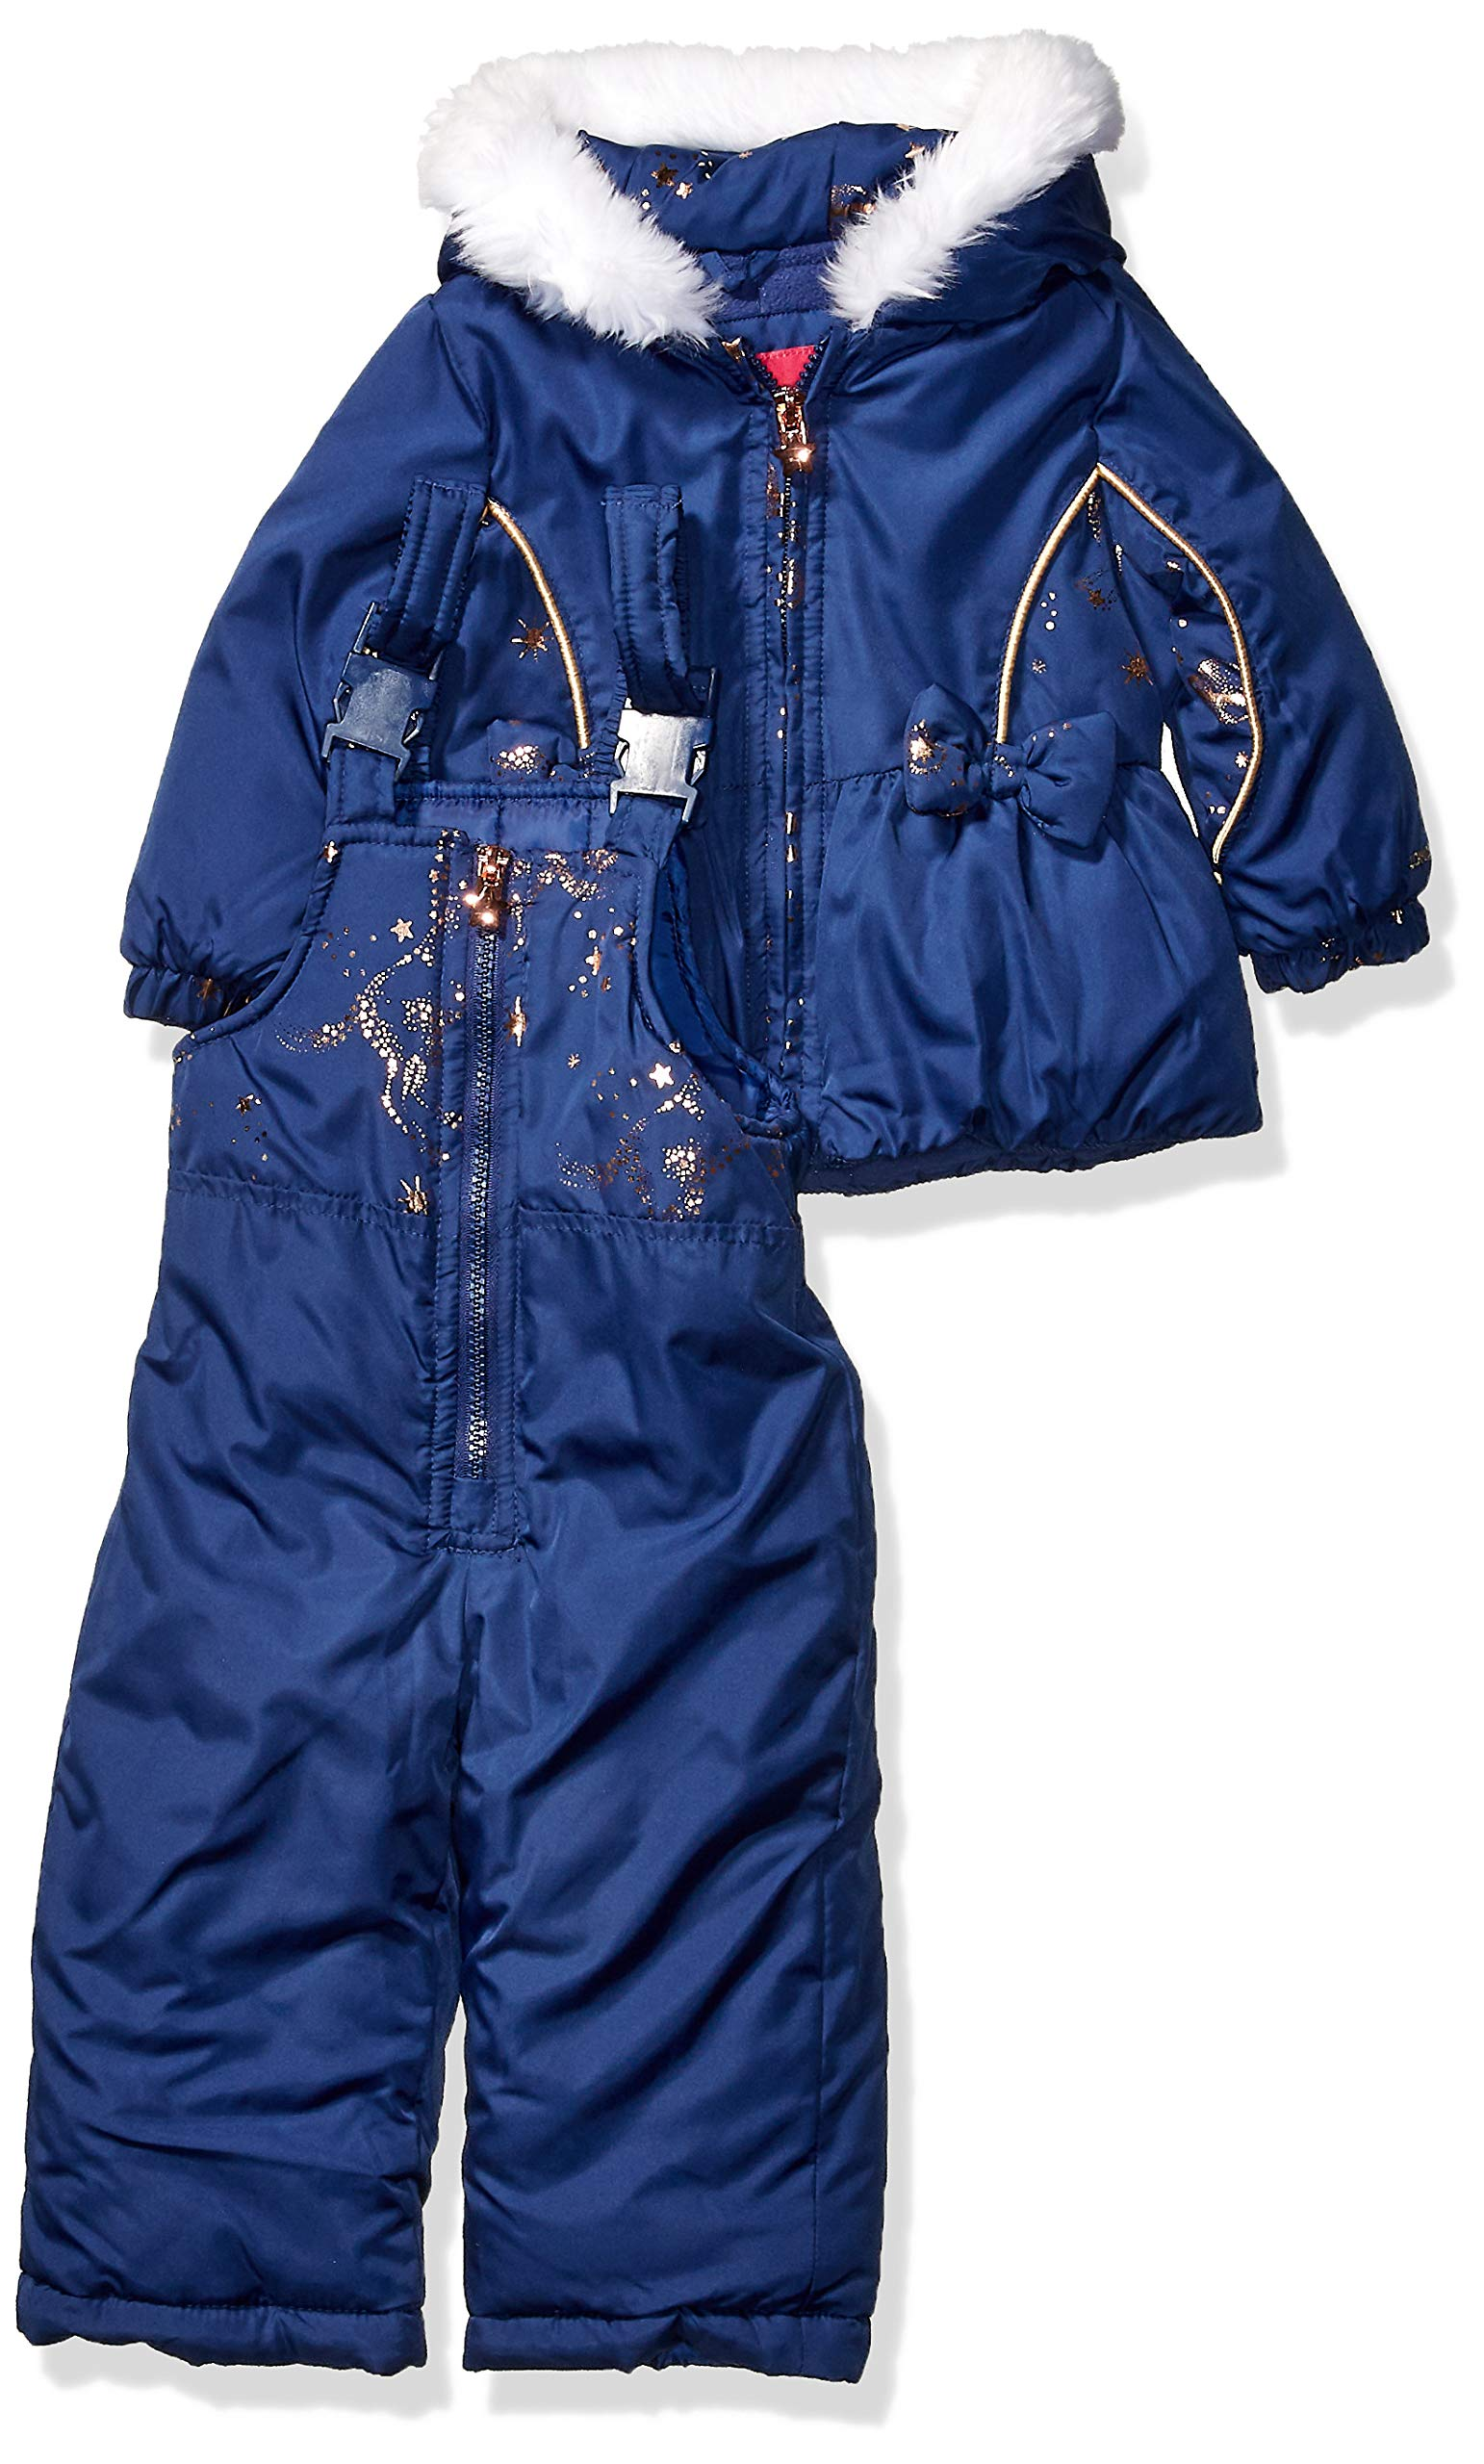 London Fog Baby Girls Snowsuit with Snowbib and Puffer Jacket, Fall Navy Unicorn, 24Mo by London Fog